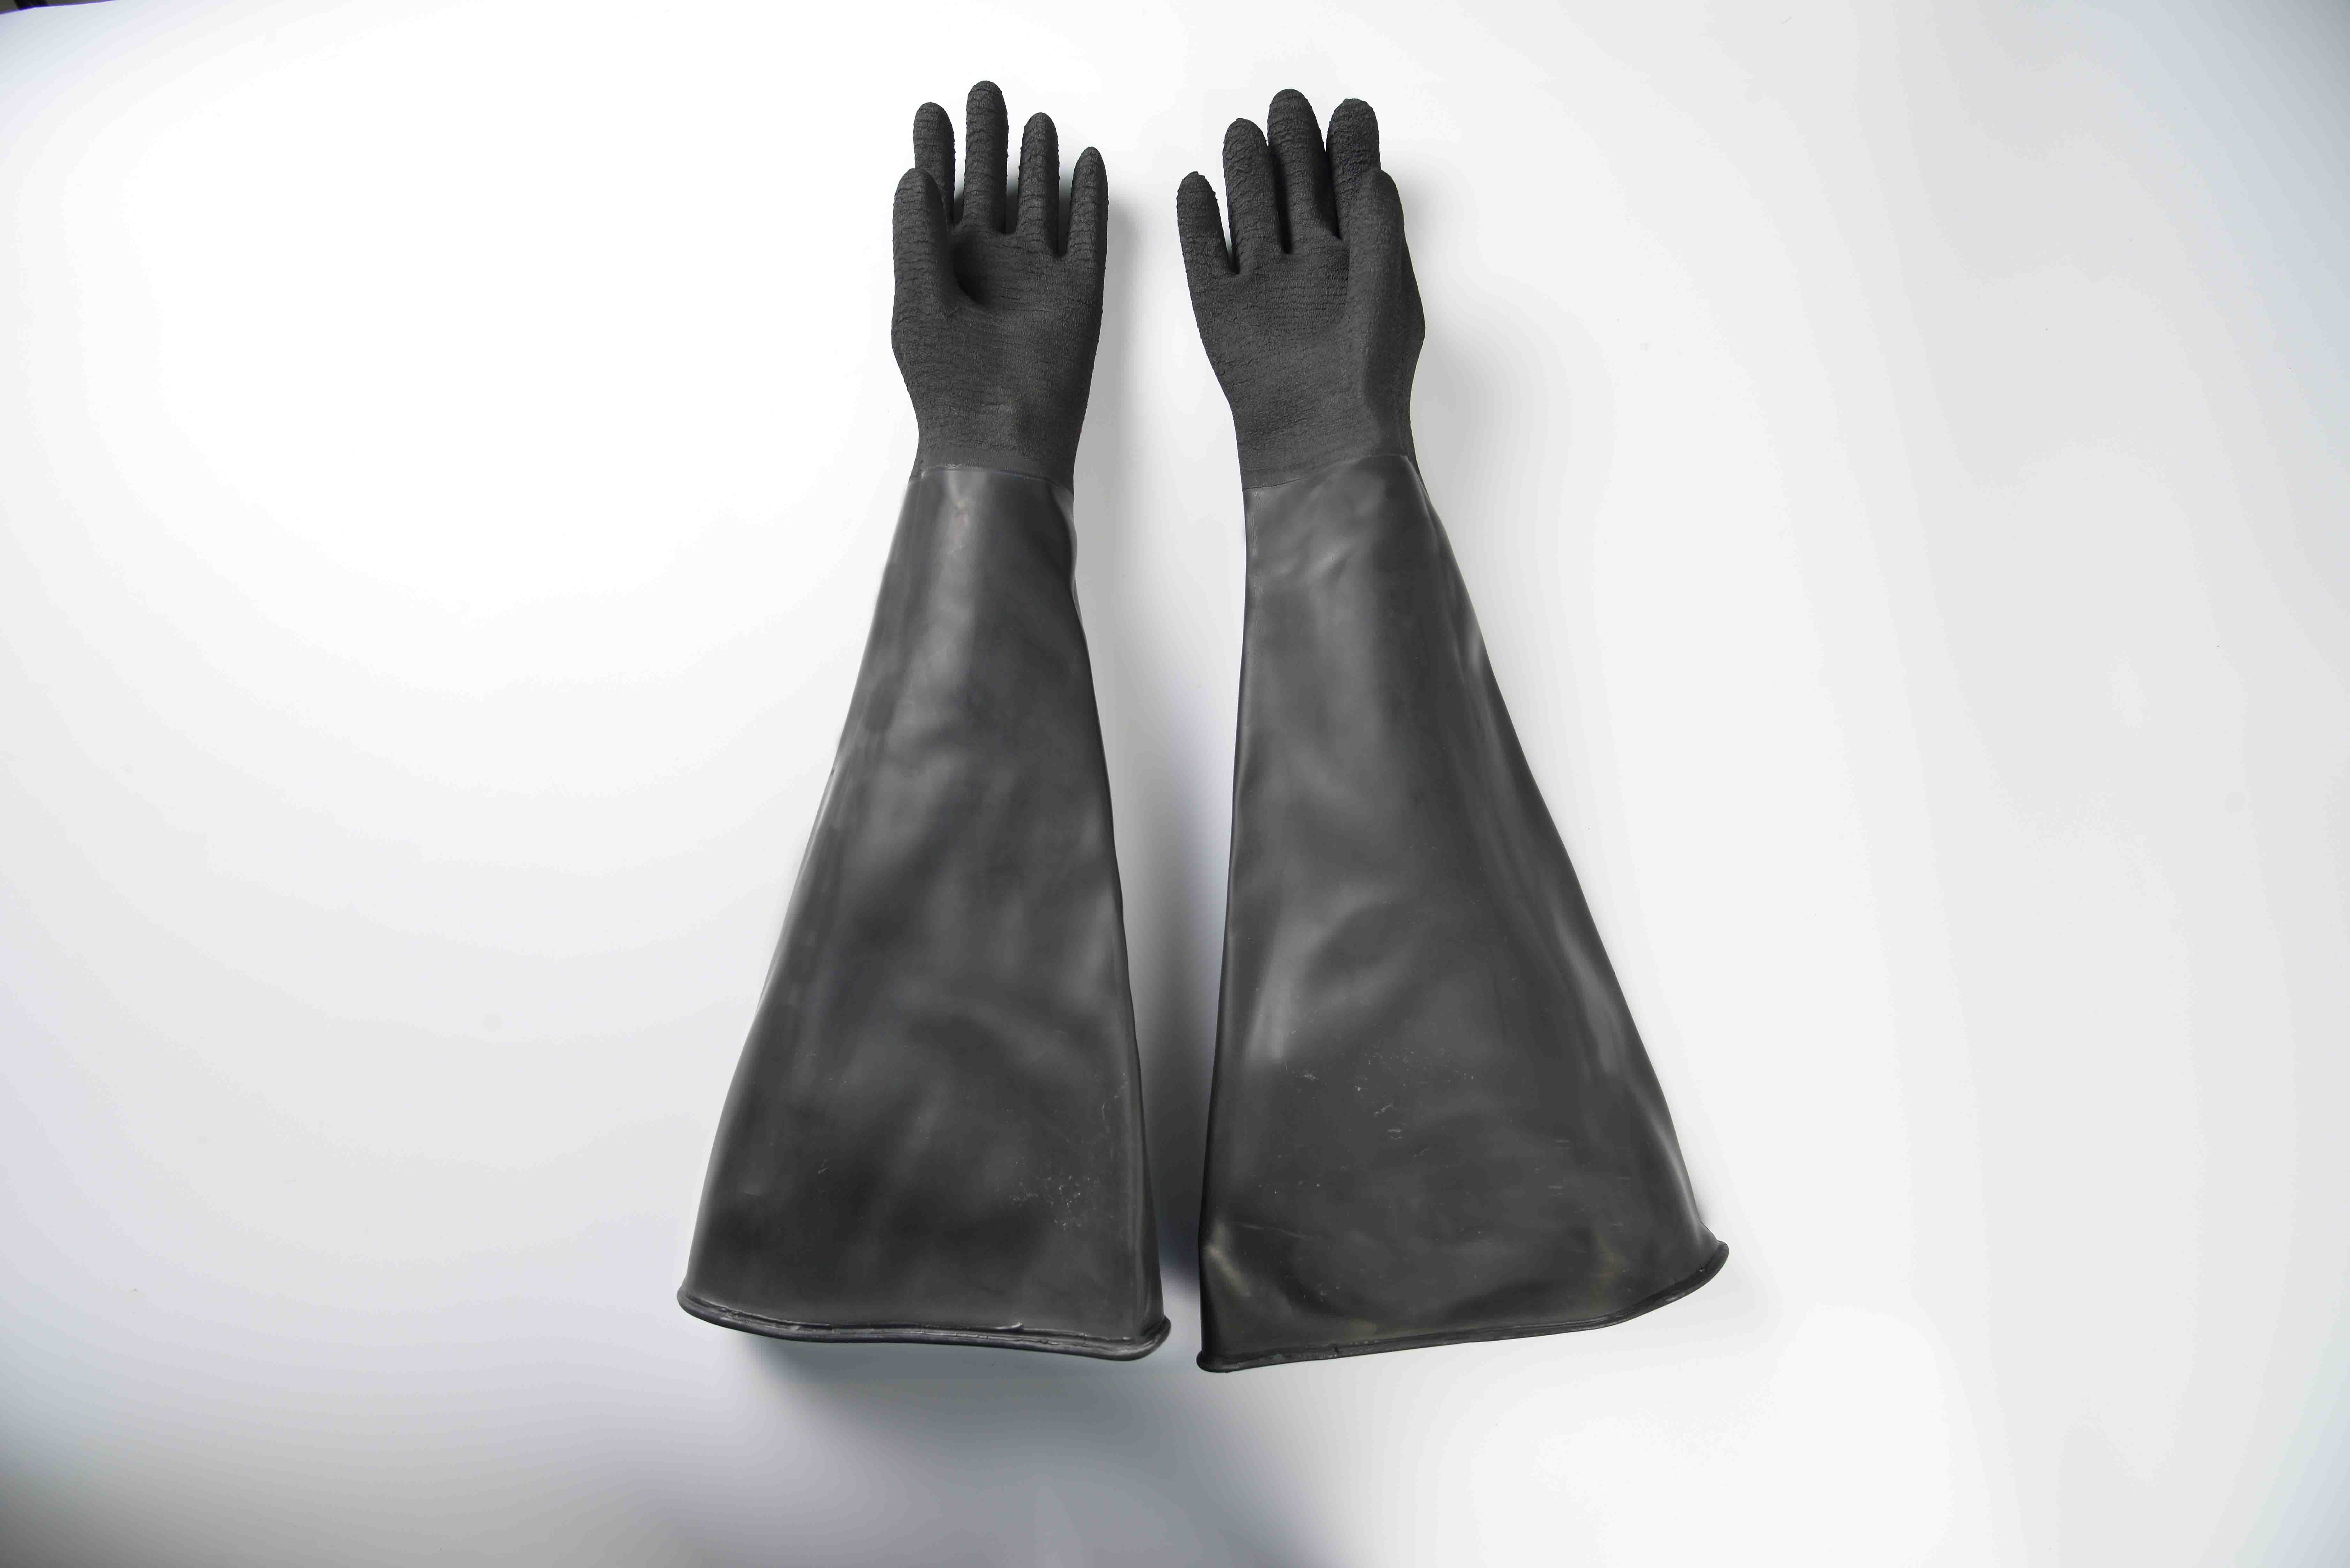 China Top 10 26″ Industrial rubber glove-rough finish St. Petersburg Supplier